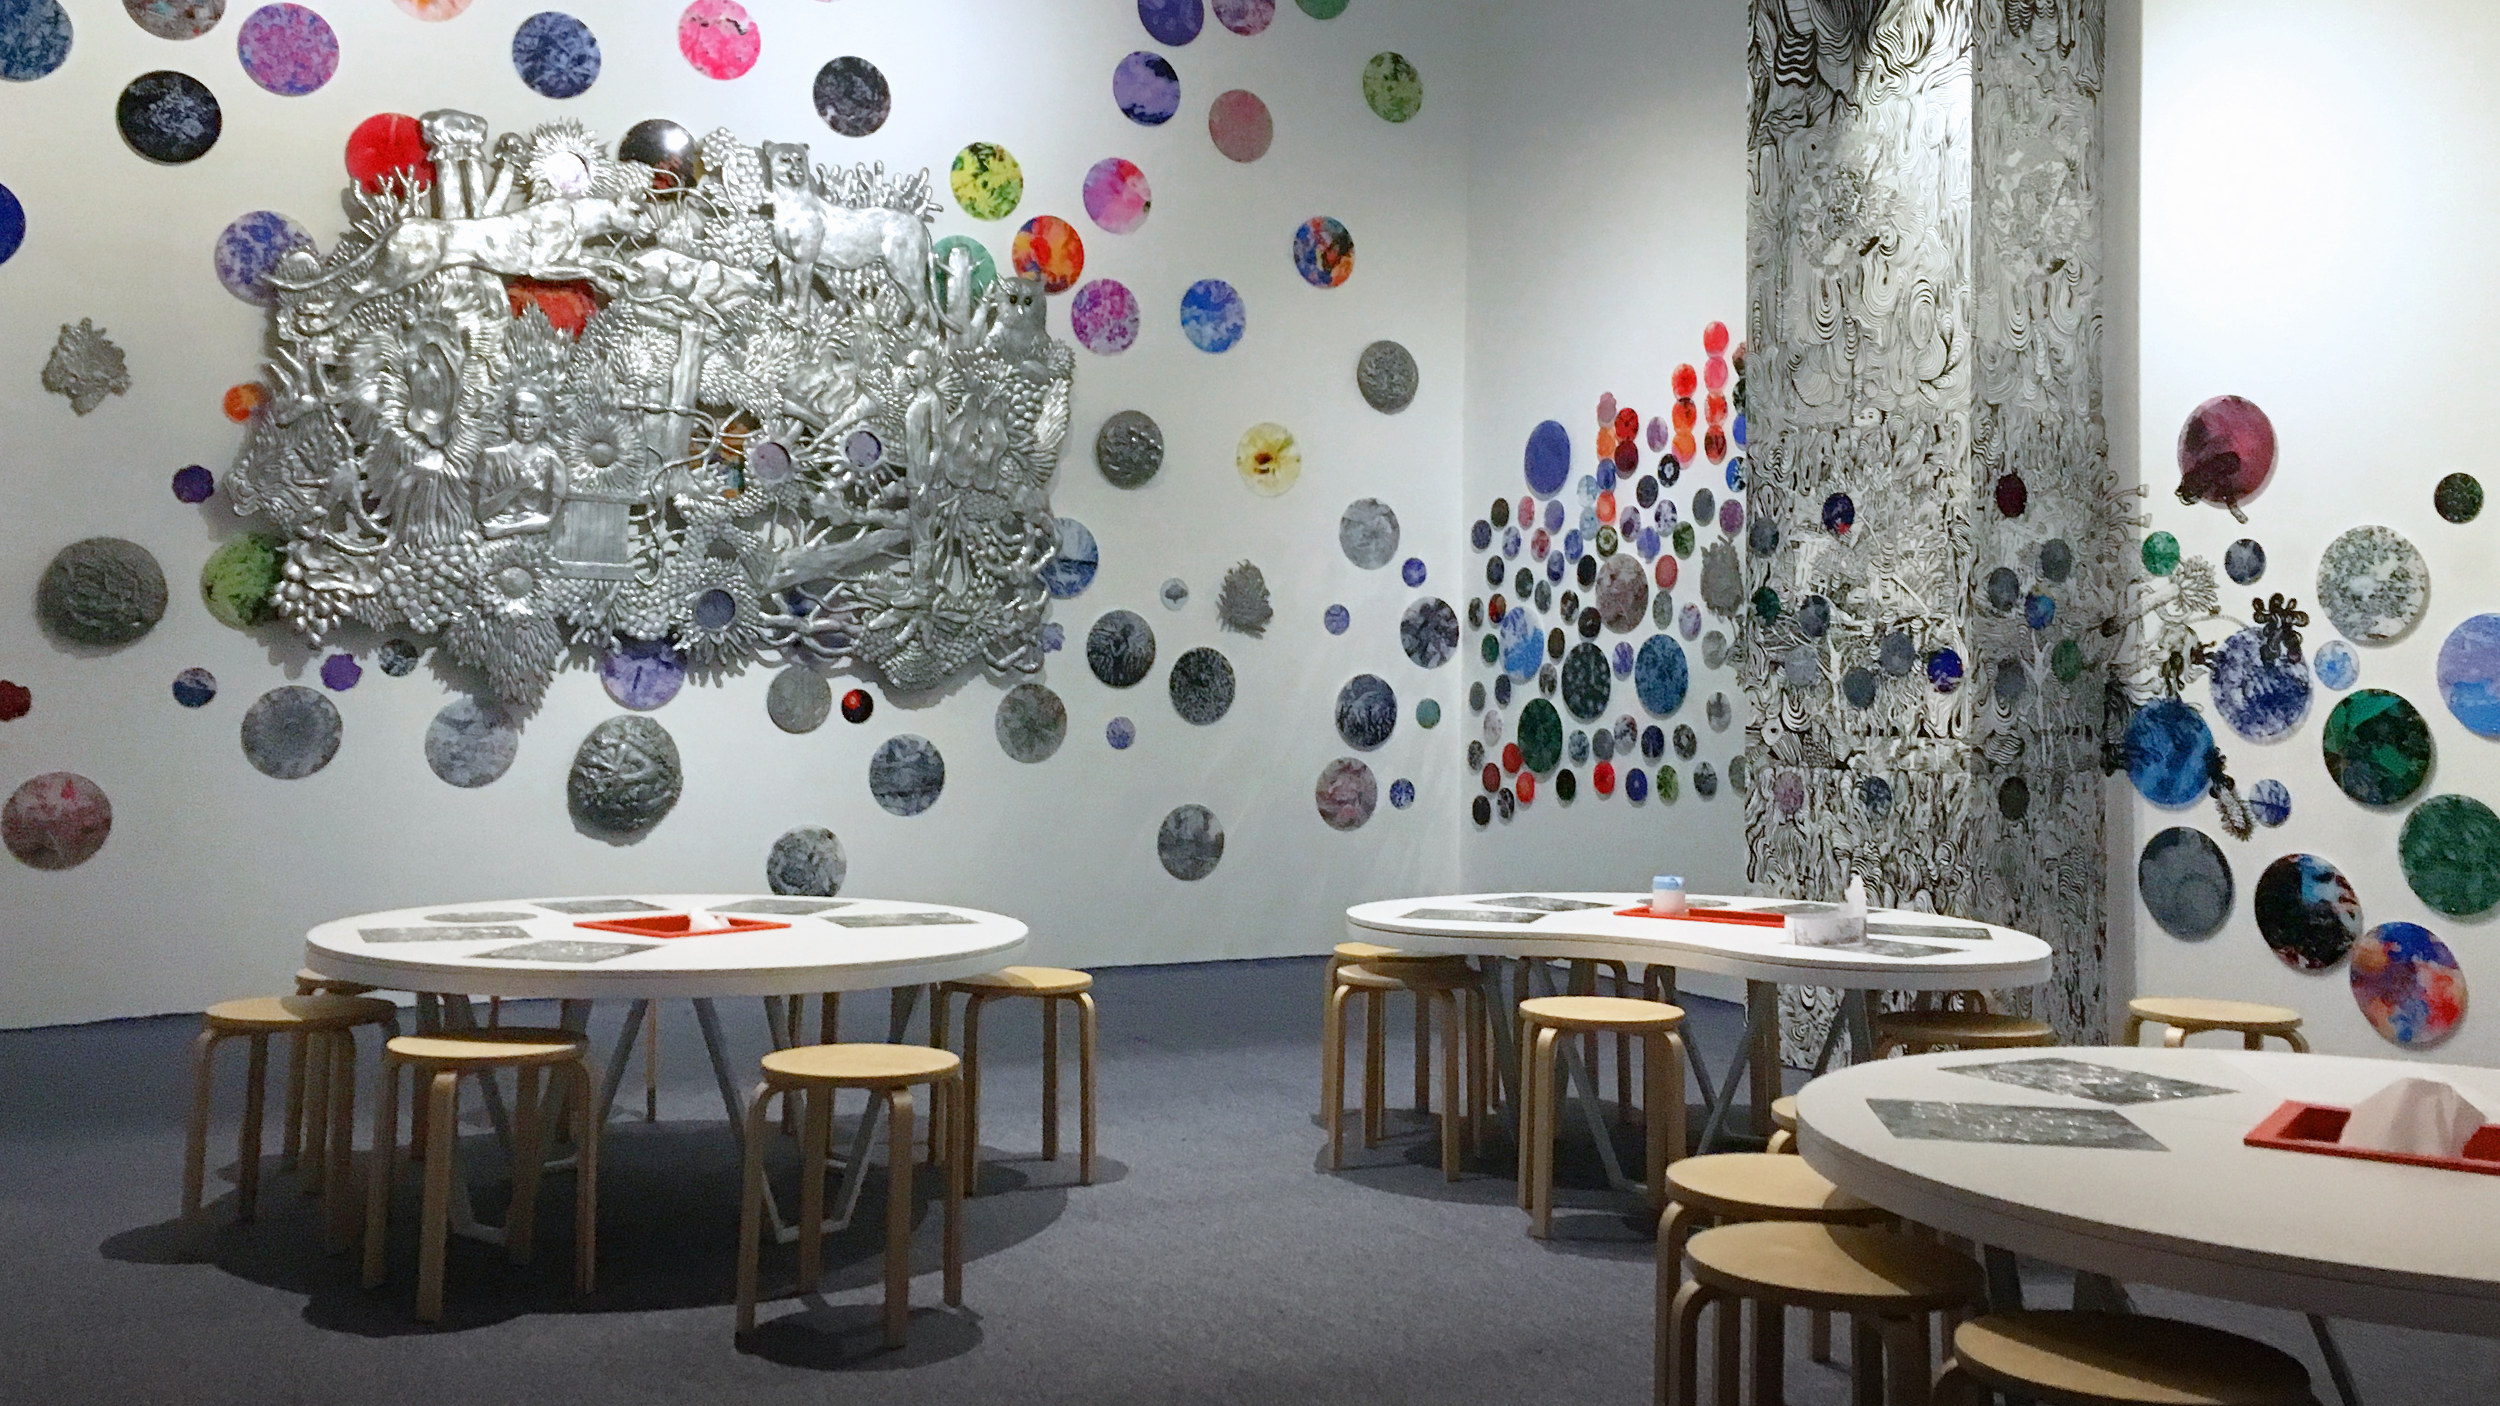 The children's art space at Museum MACAN